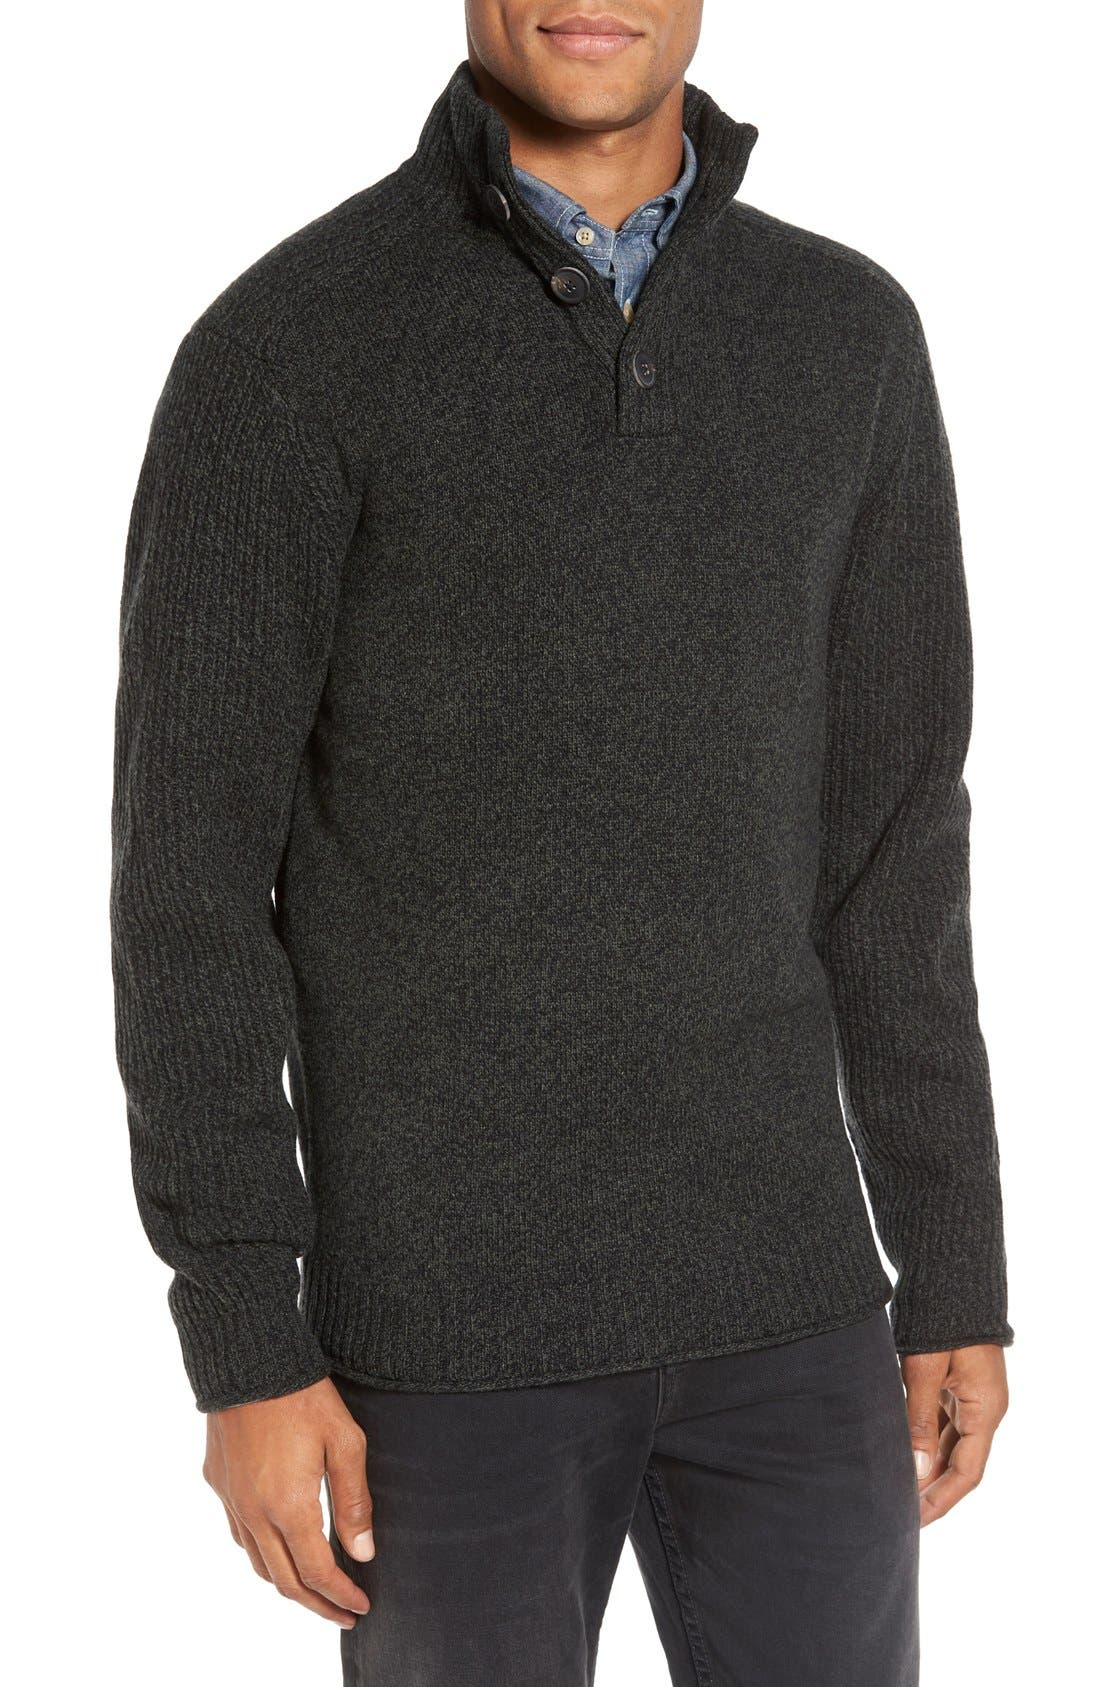 Birkenhead Mock Neck Sweater,                             Main thumbnail 1, color,                             Forest